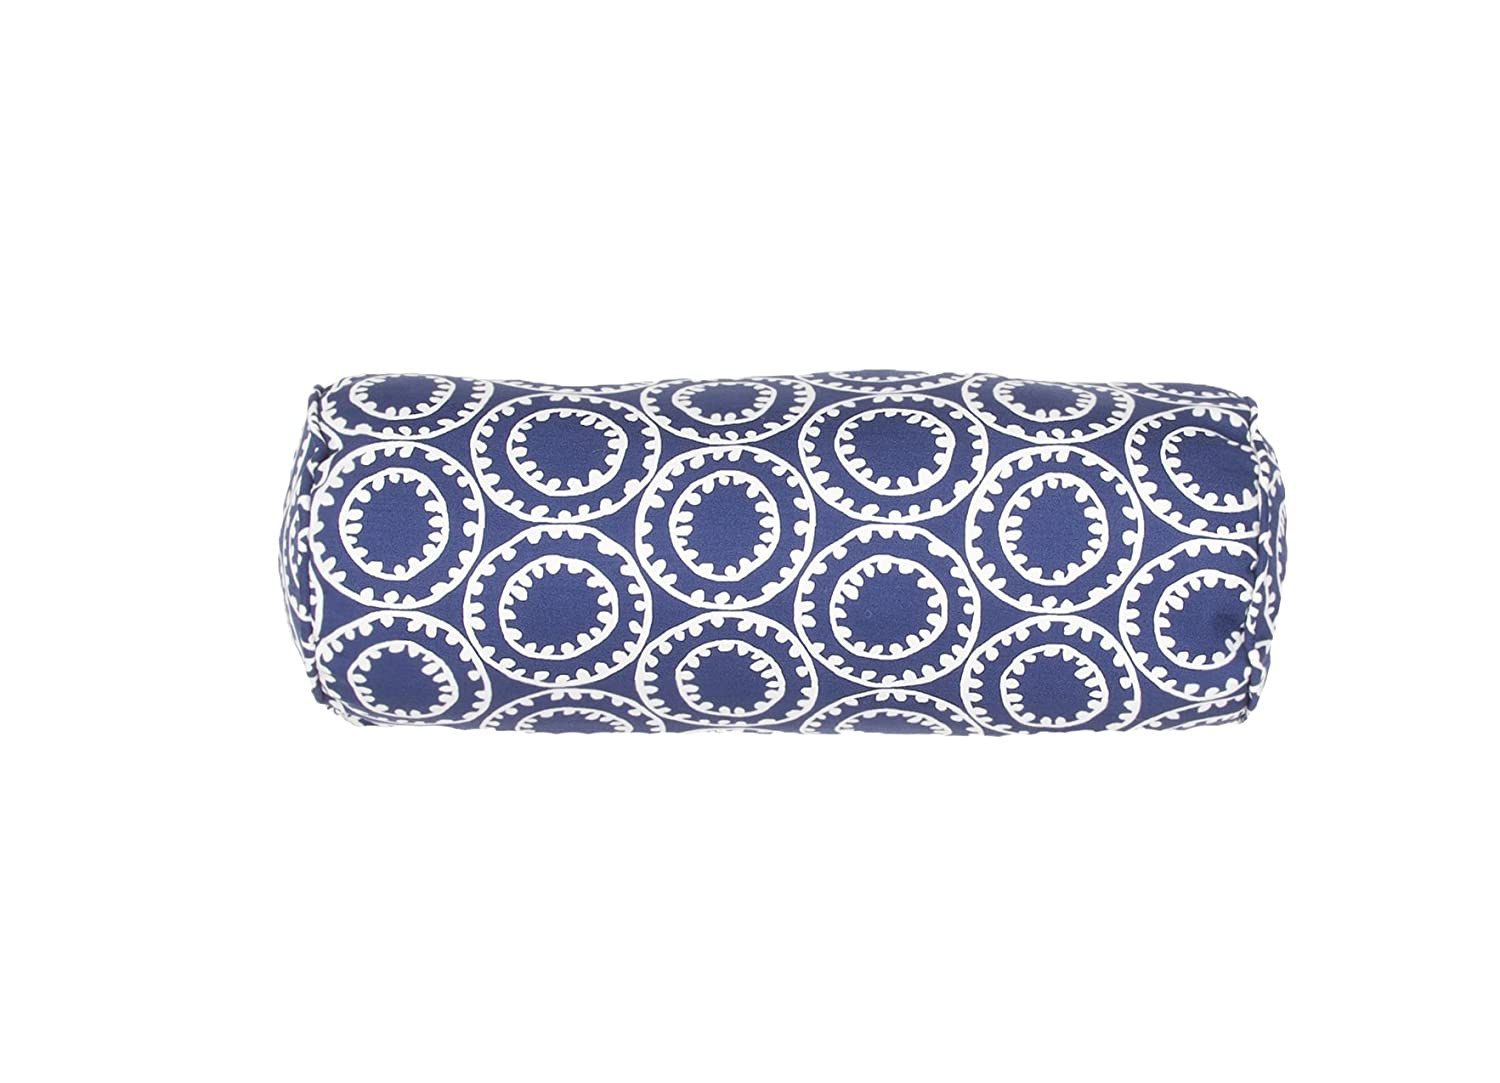 Jaipur Geometric Pattern Blue Polyester Polly Fill Pillow, 7-Inch x 20-Inch, Twilight Odl Ring A Bell